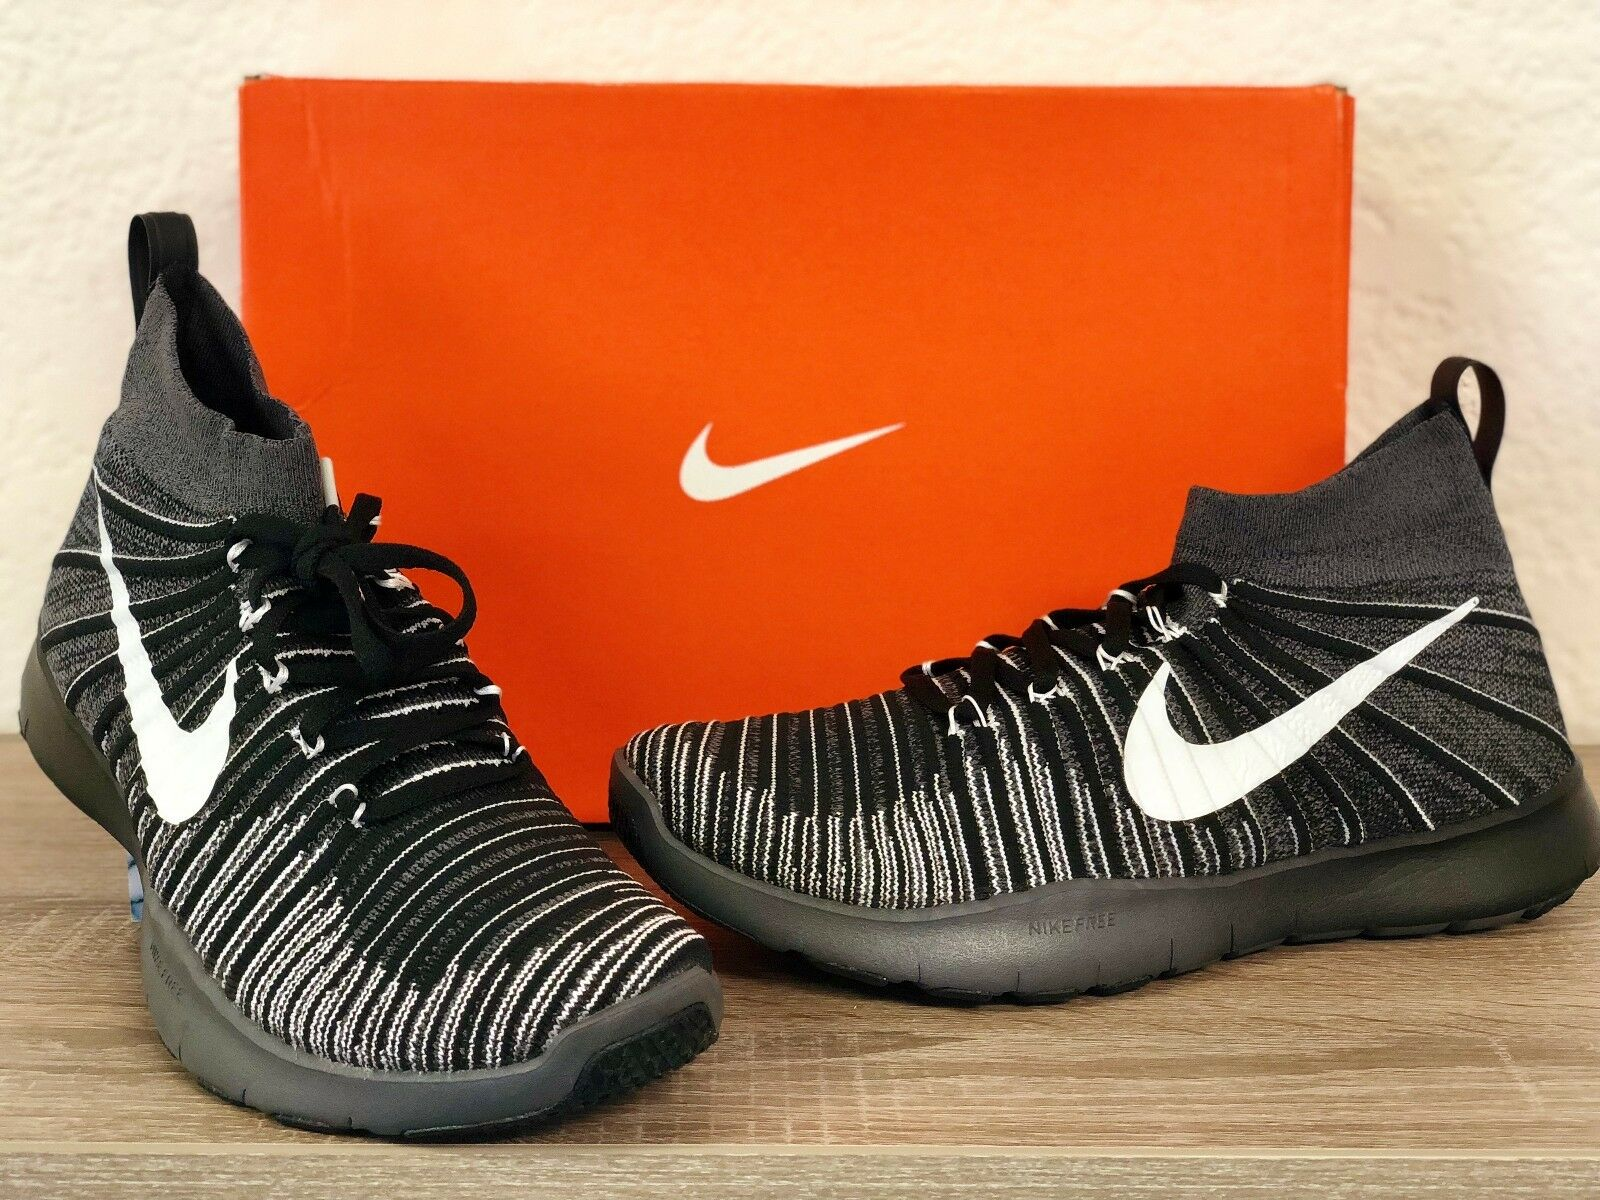 Mens Nike Free Train Force New Flyknit Sneakers Black/White 833275-017 Great discount